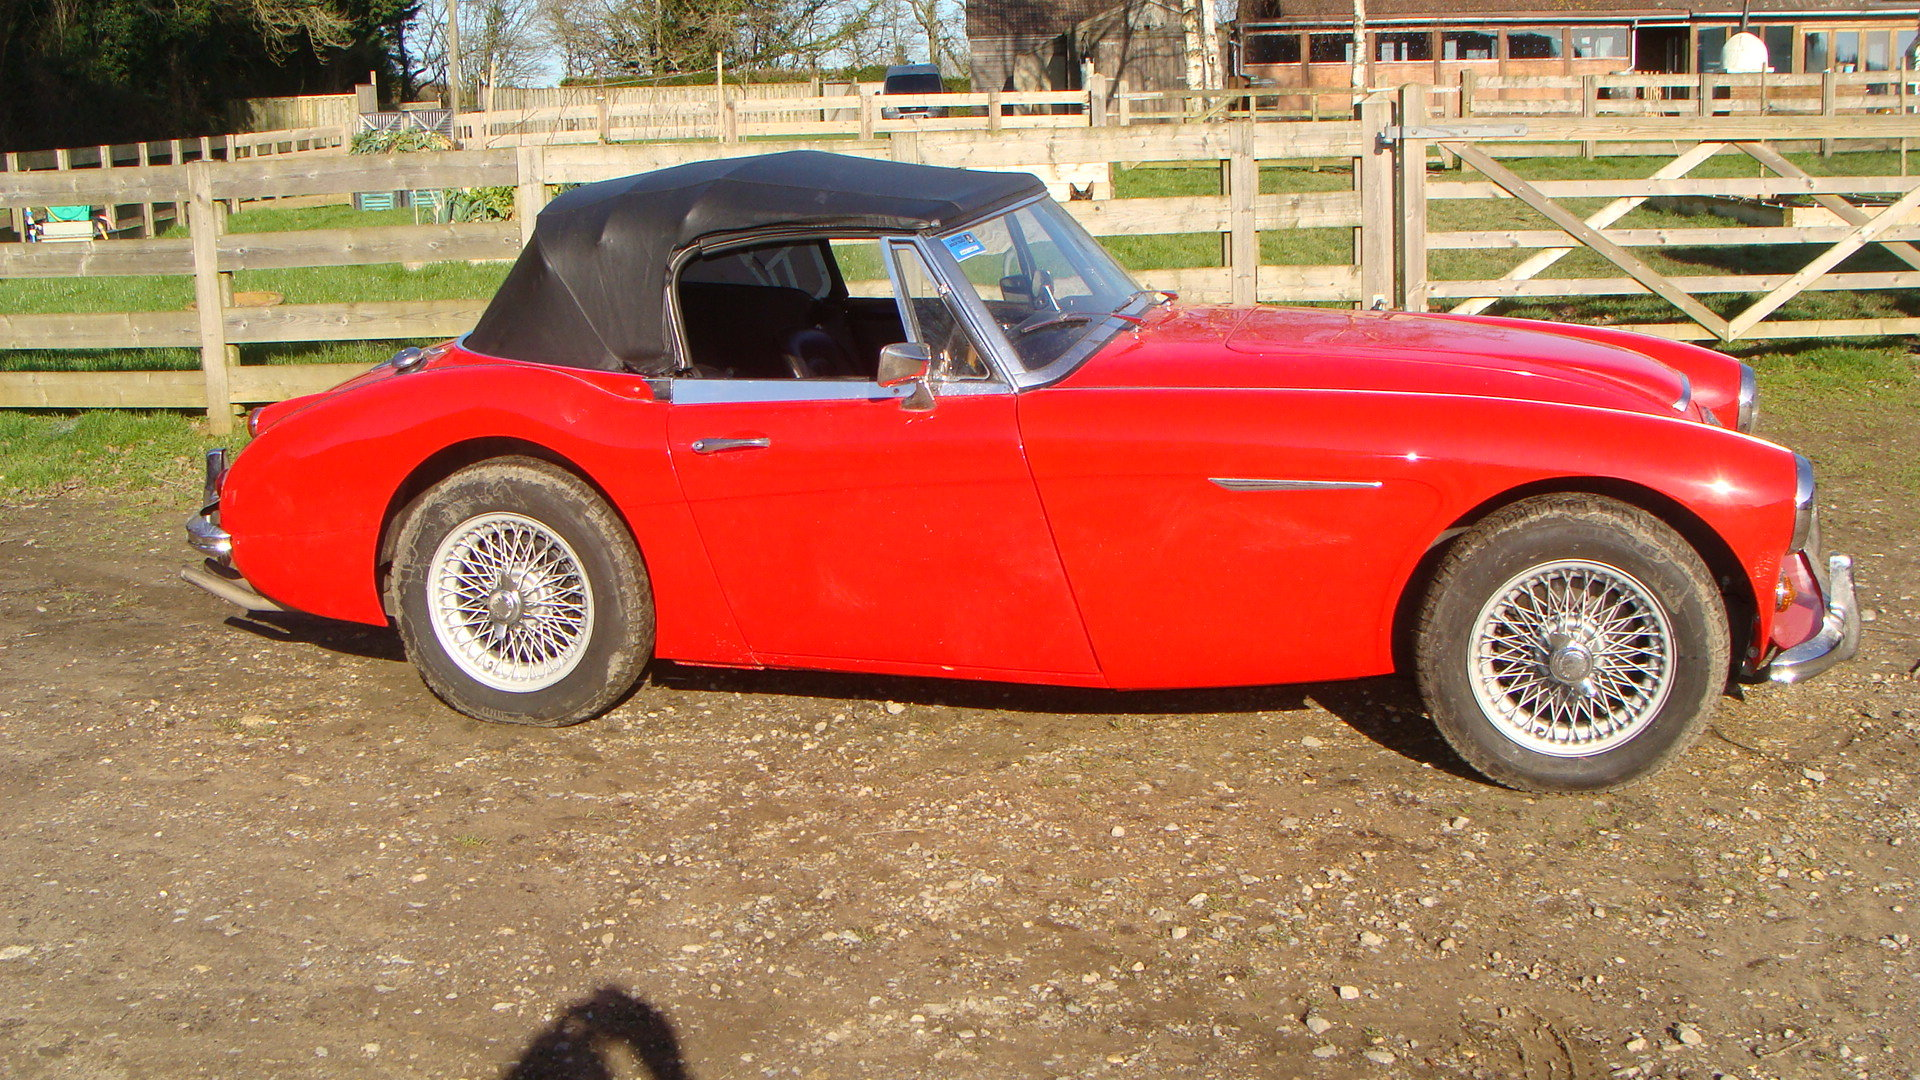 1965 Austin Healey 3000 Mk 111 BJ8 For Sale (picture 1 of 6)